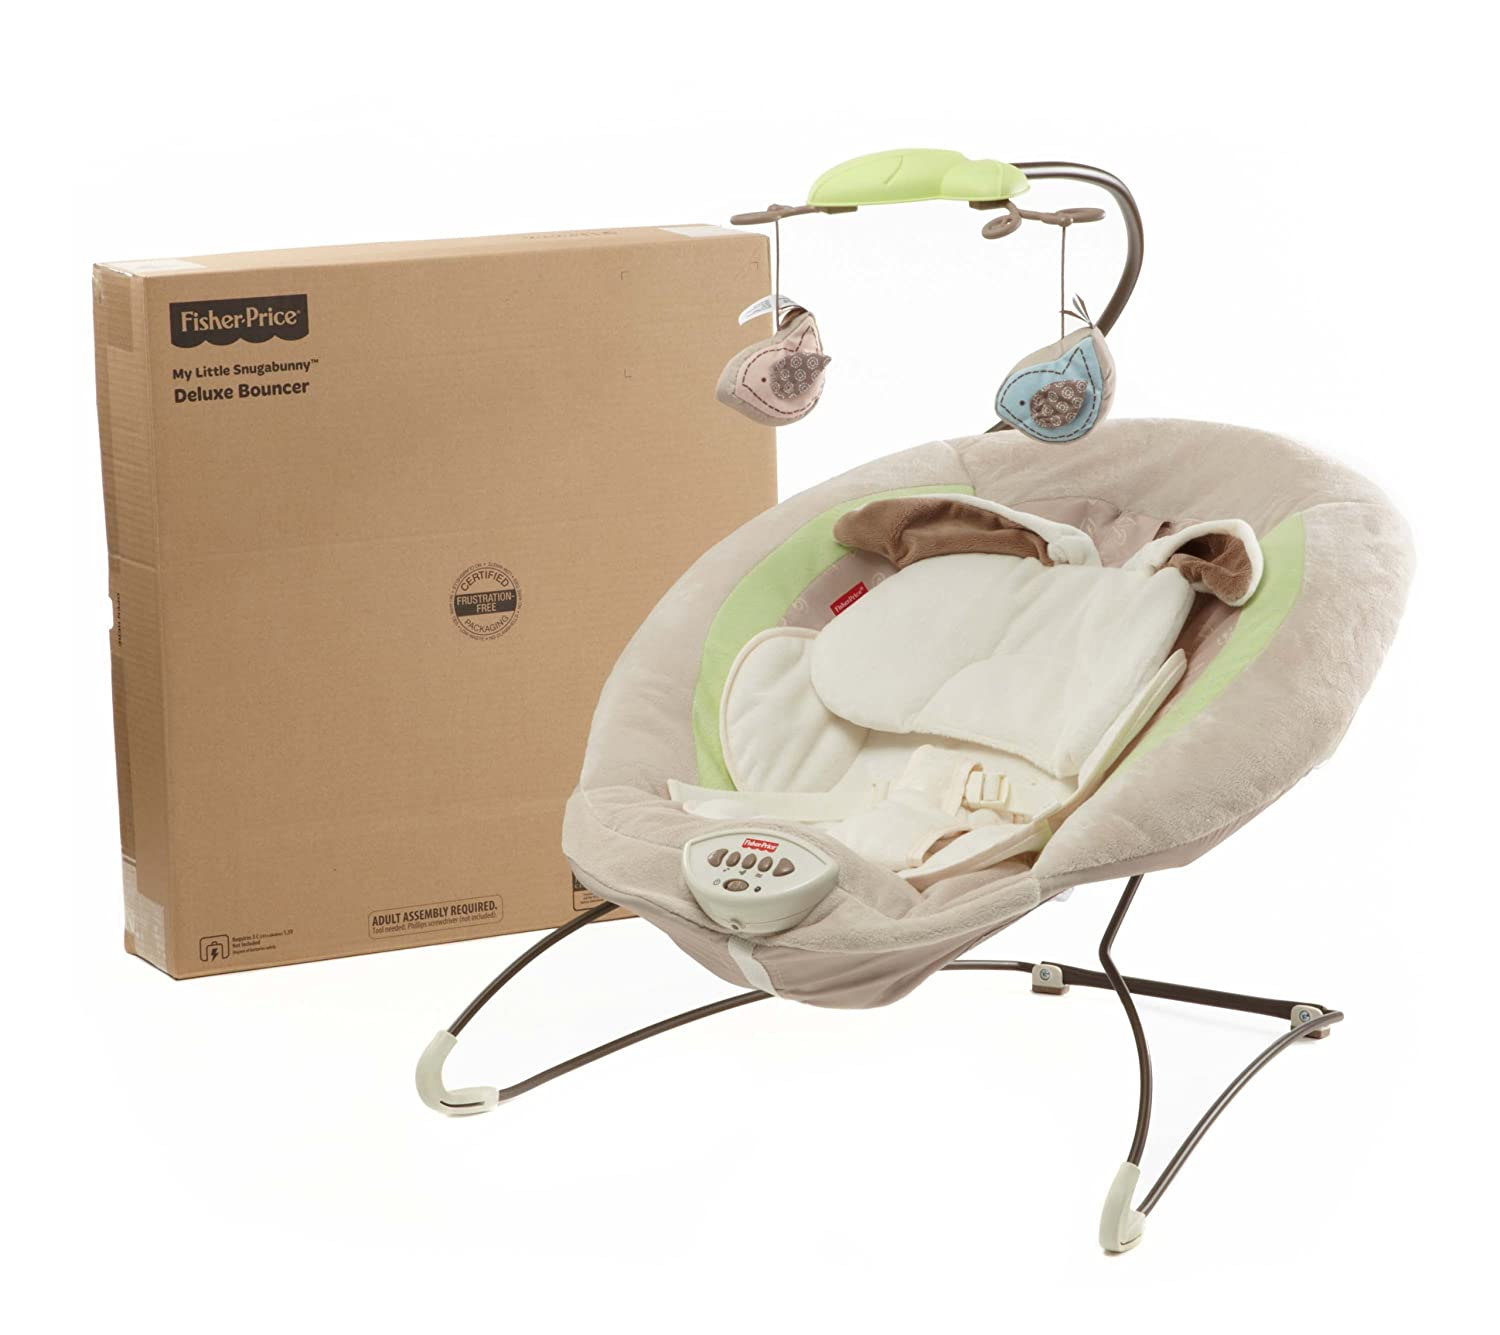 NEW Fisher Price My Little Snugabunny Bouncer Baby Seat